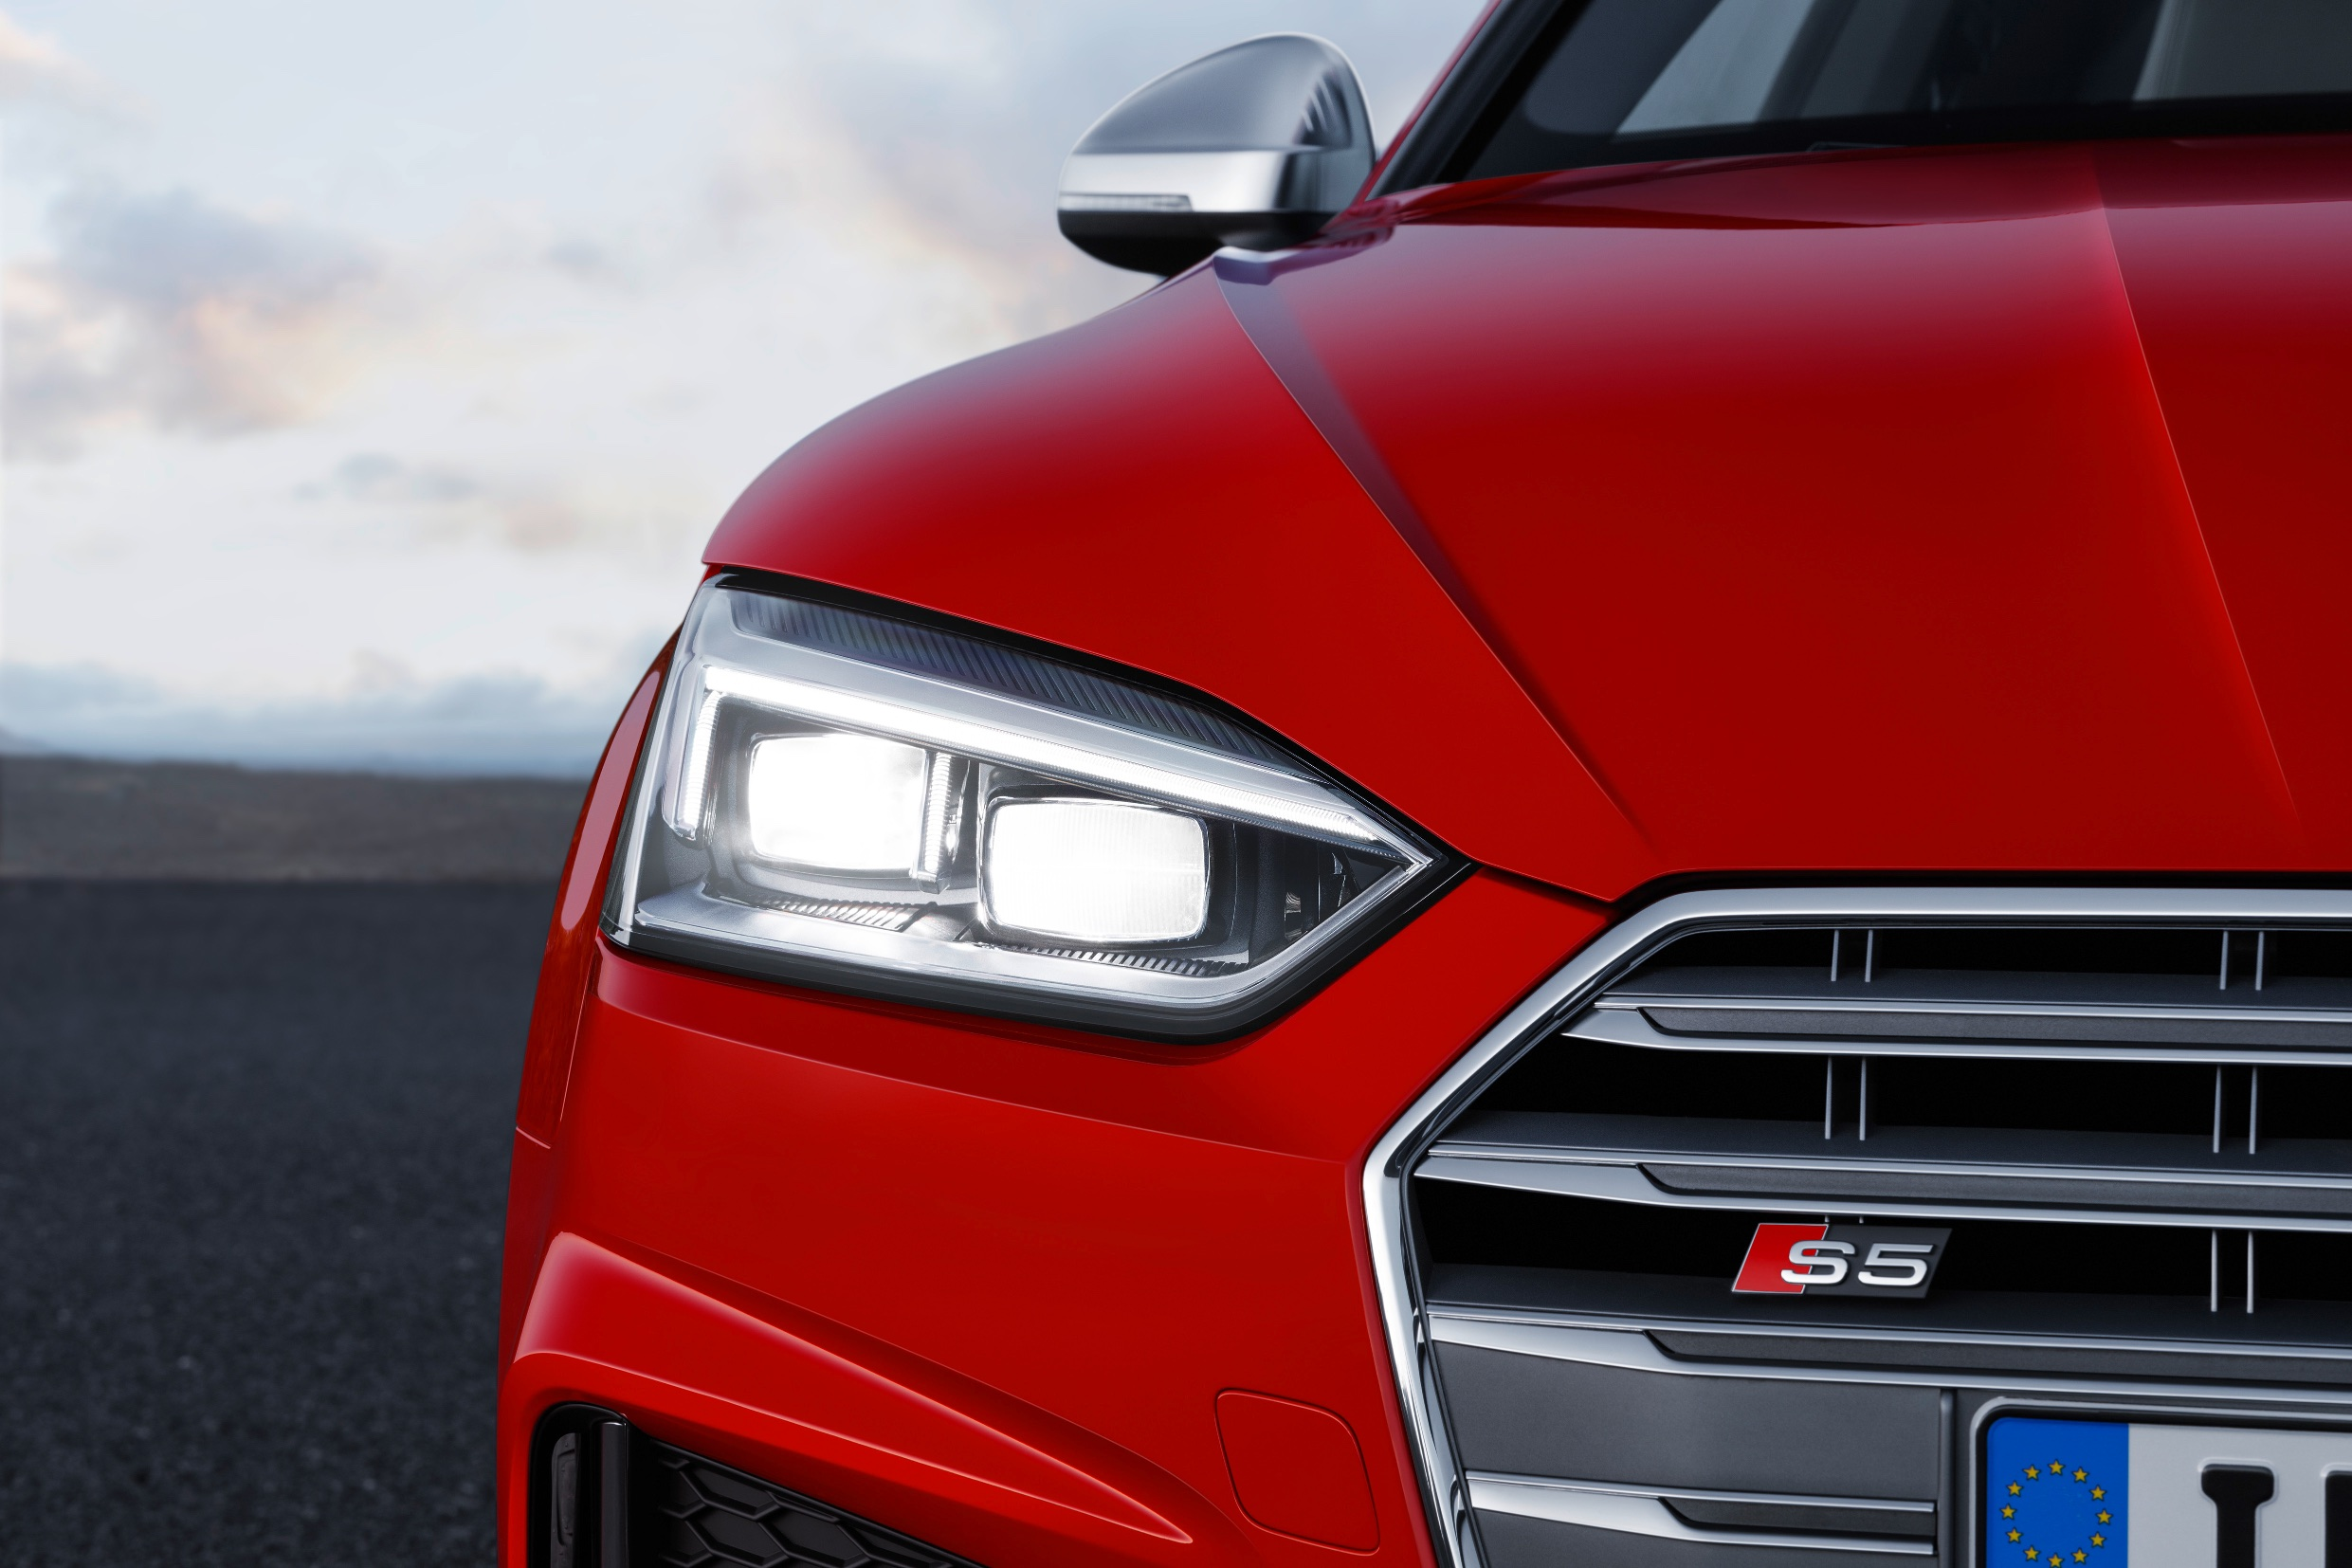 Power in Porto With The New Audi S5 5